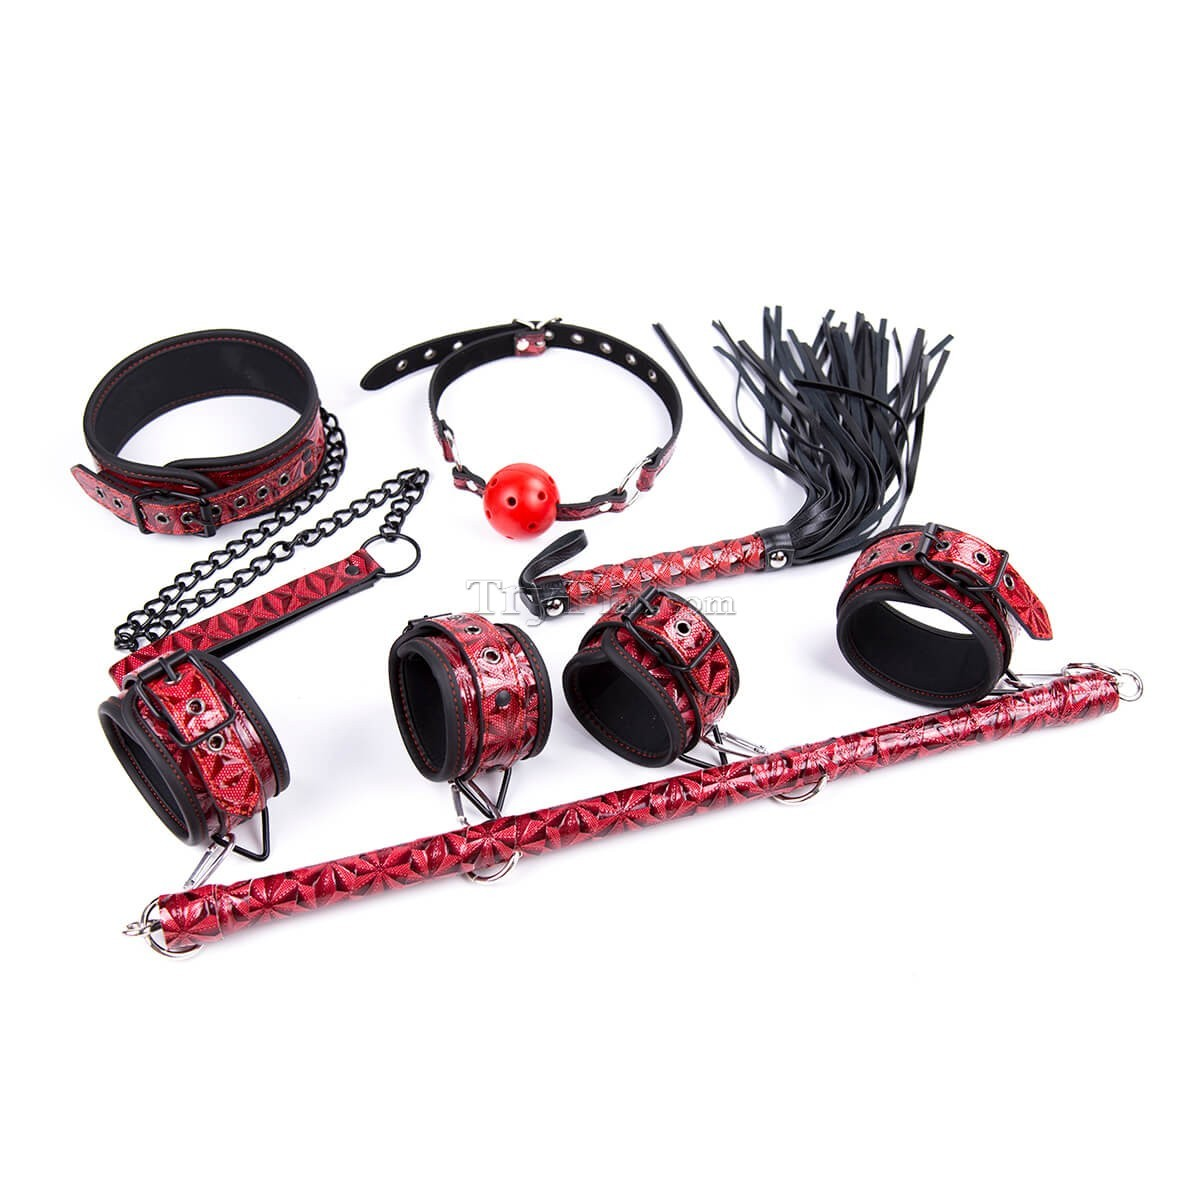 4-red-and-black-set1.jpg